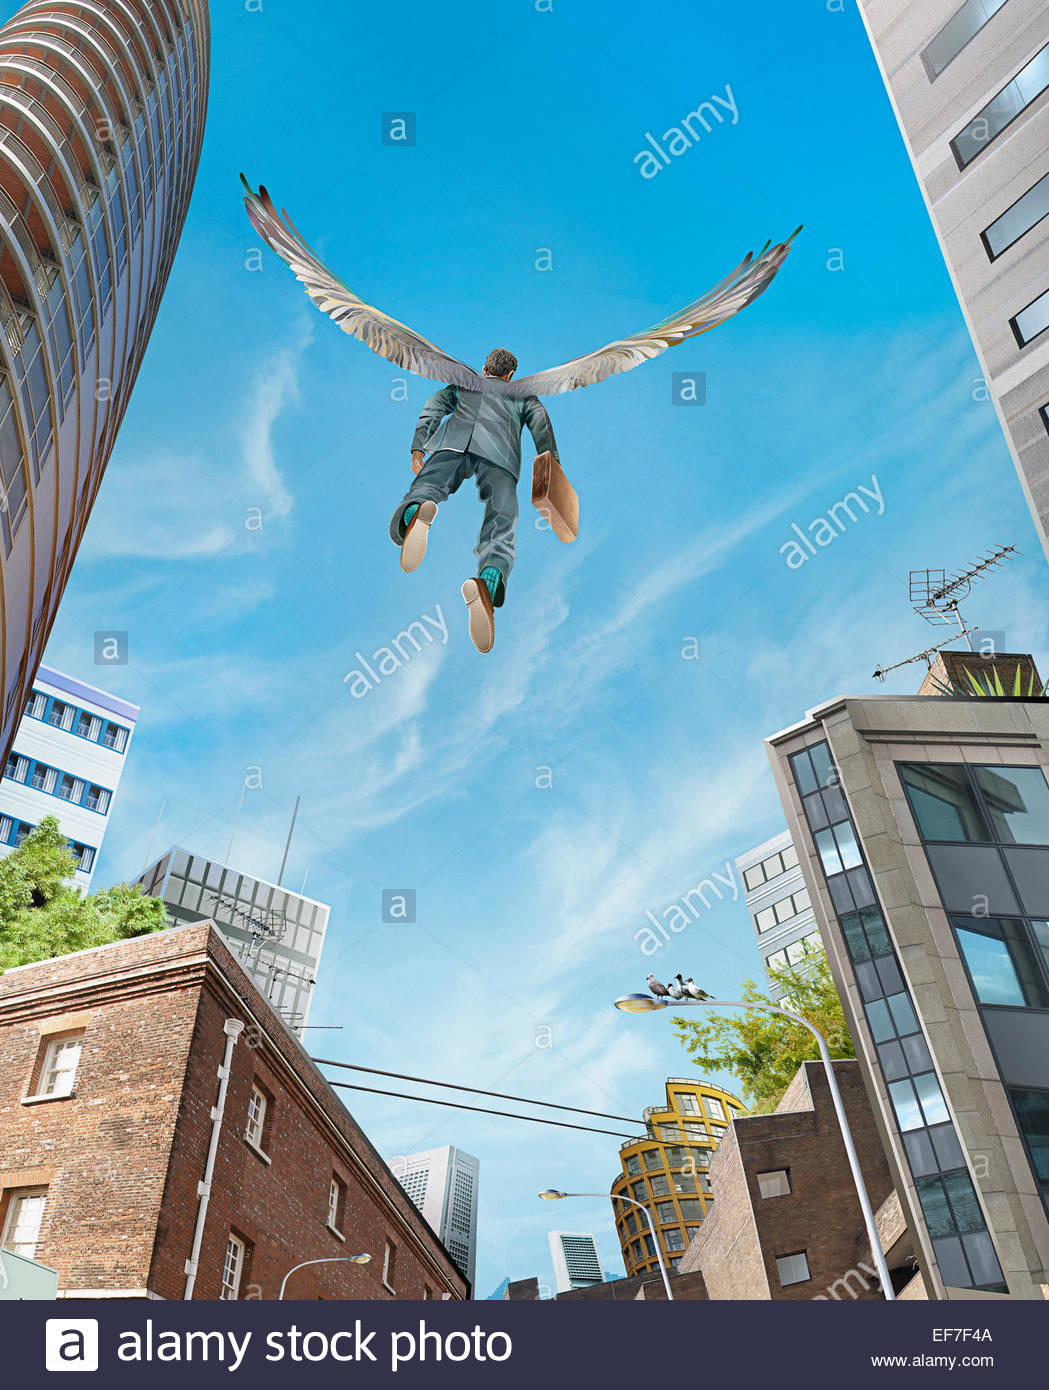 Successful businessman with wings flying over city - Stock Image